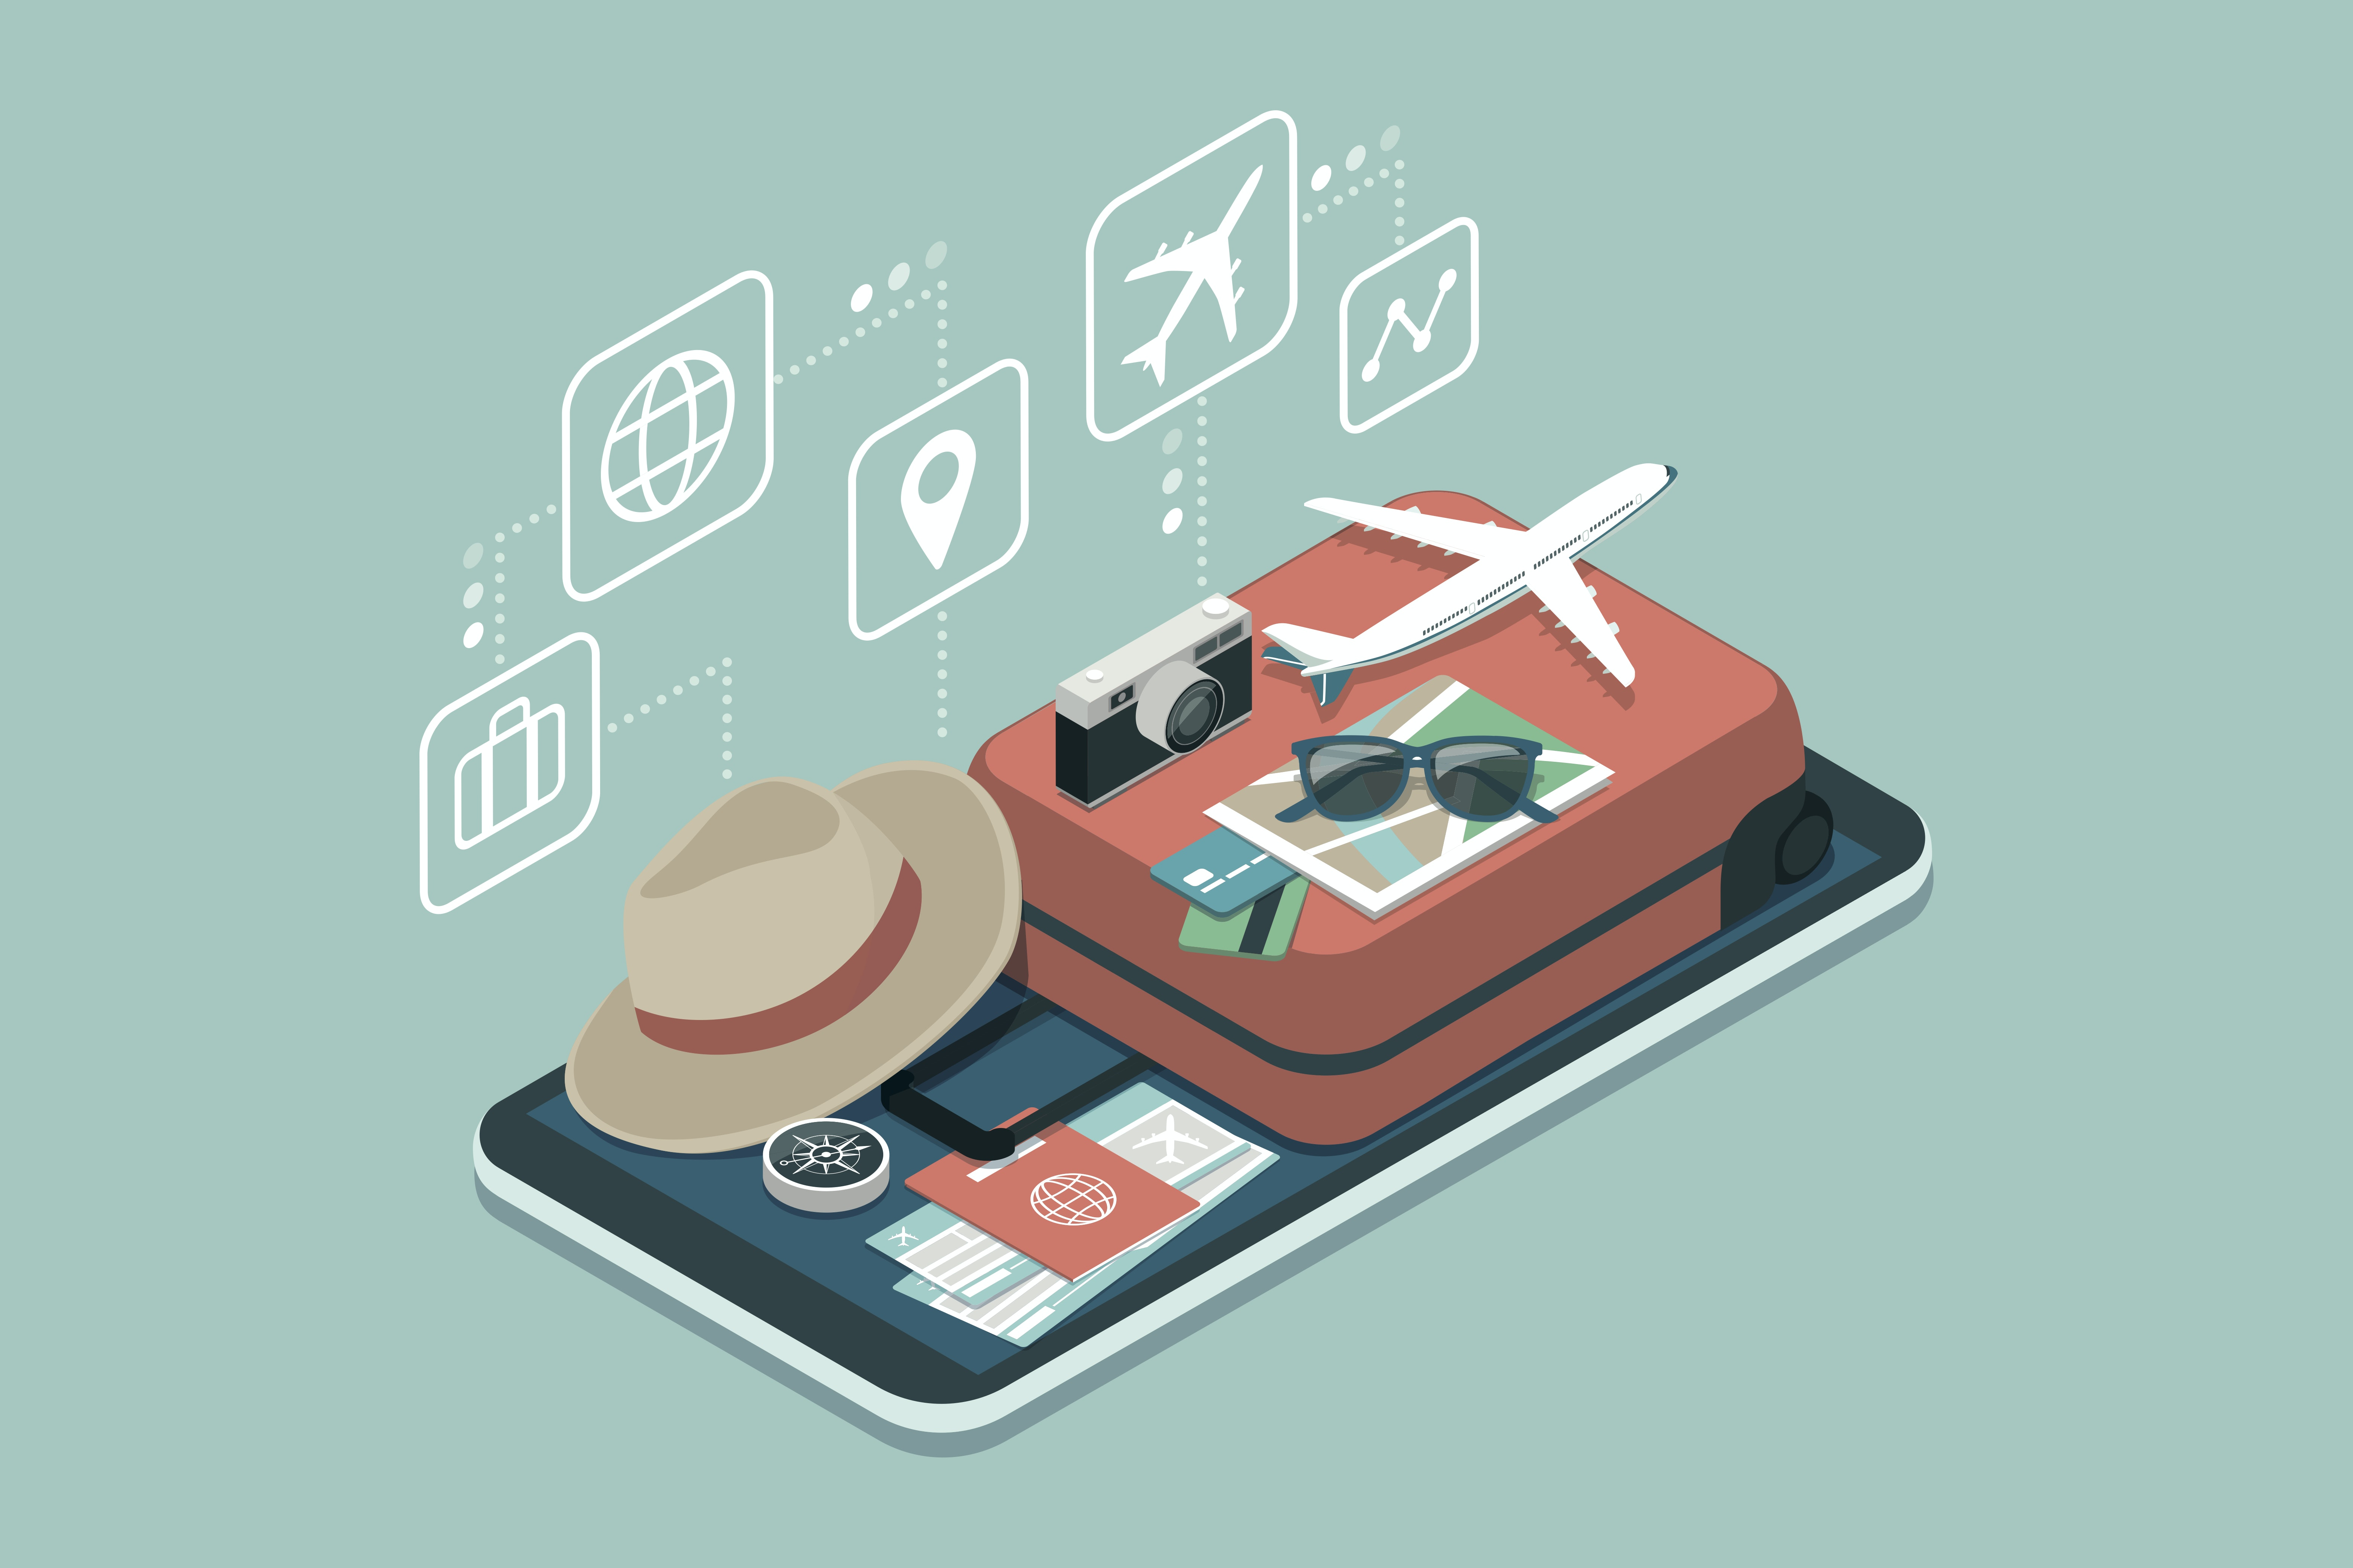 An illustration of a suitcase along with a passport, hat, camera, sunglasses and model aeroplane.